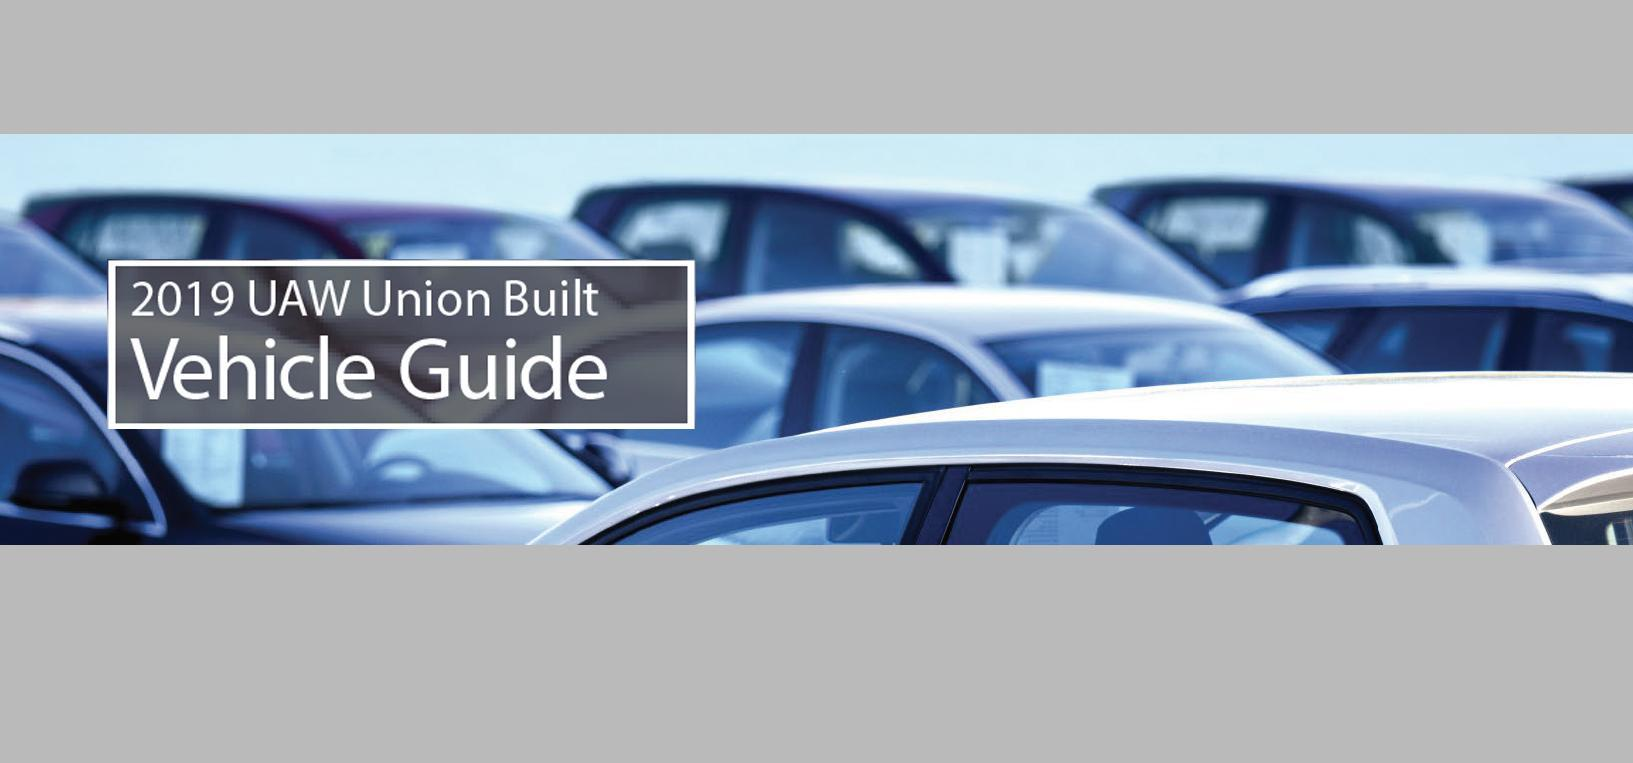 Vehicle Guide 2019